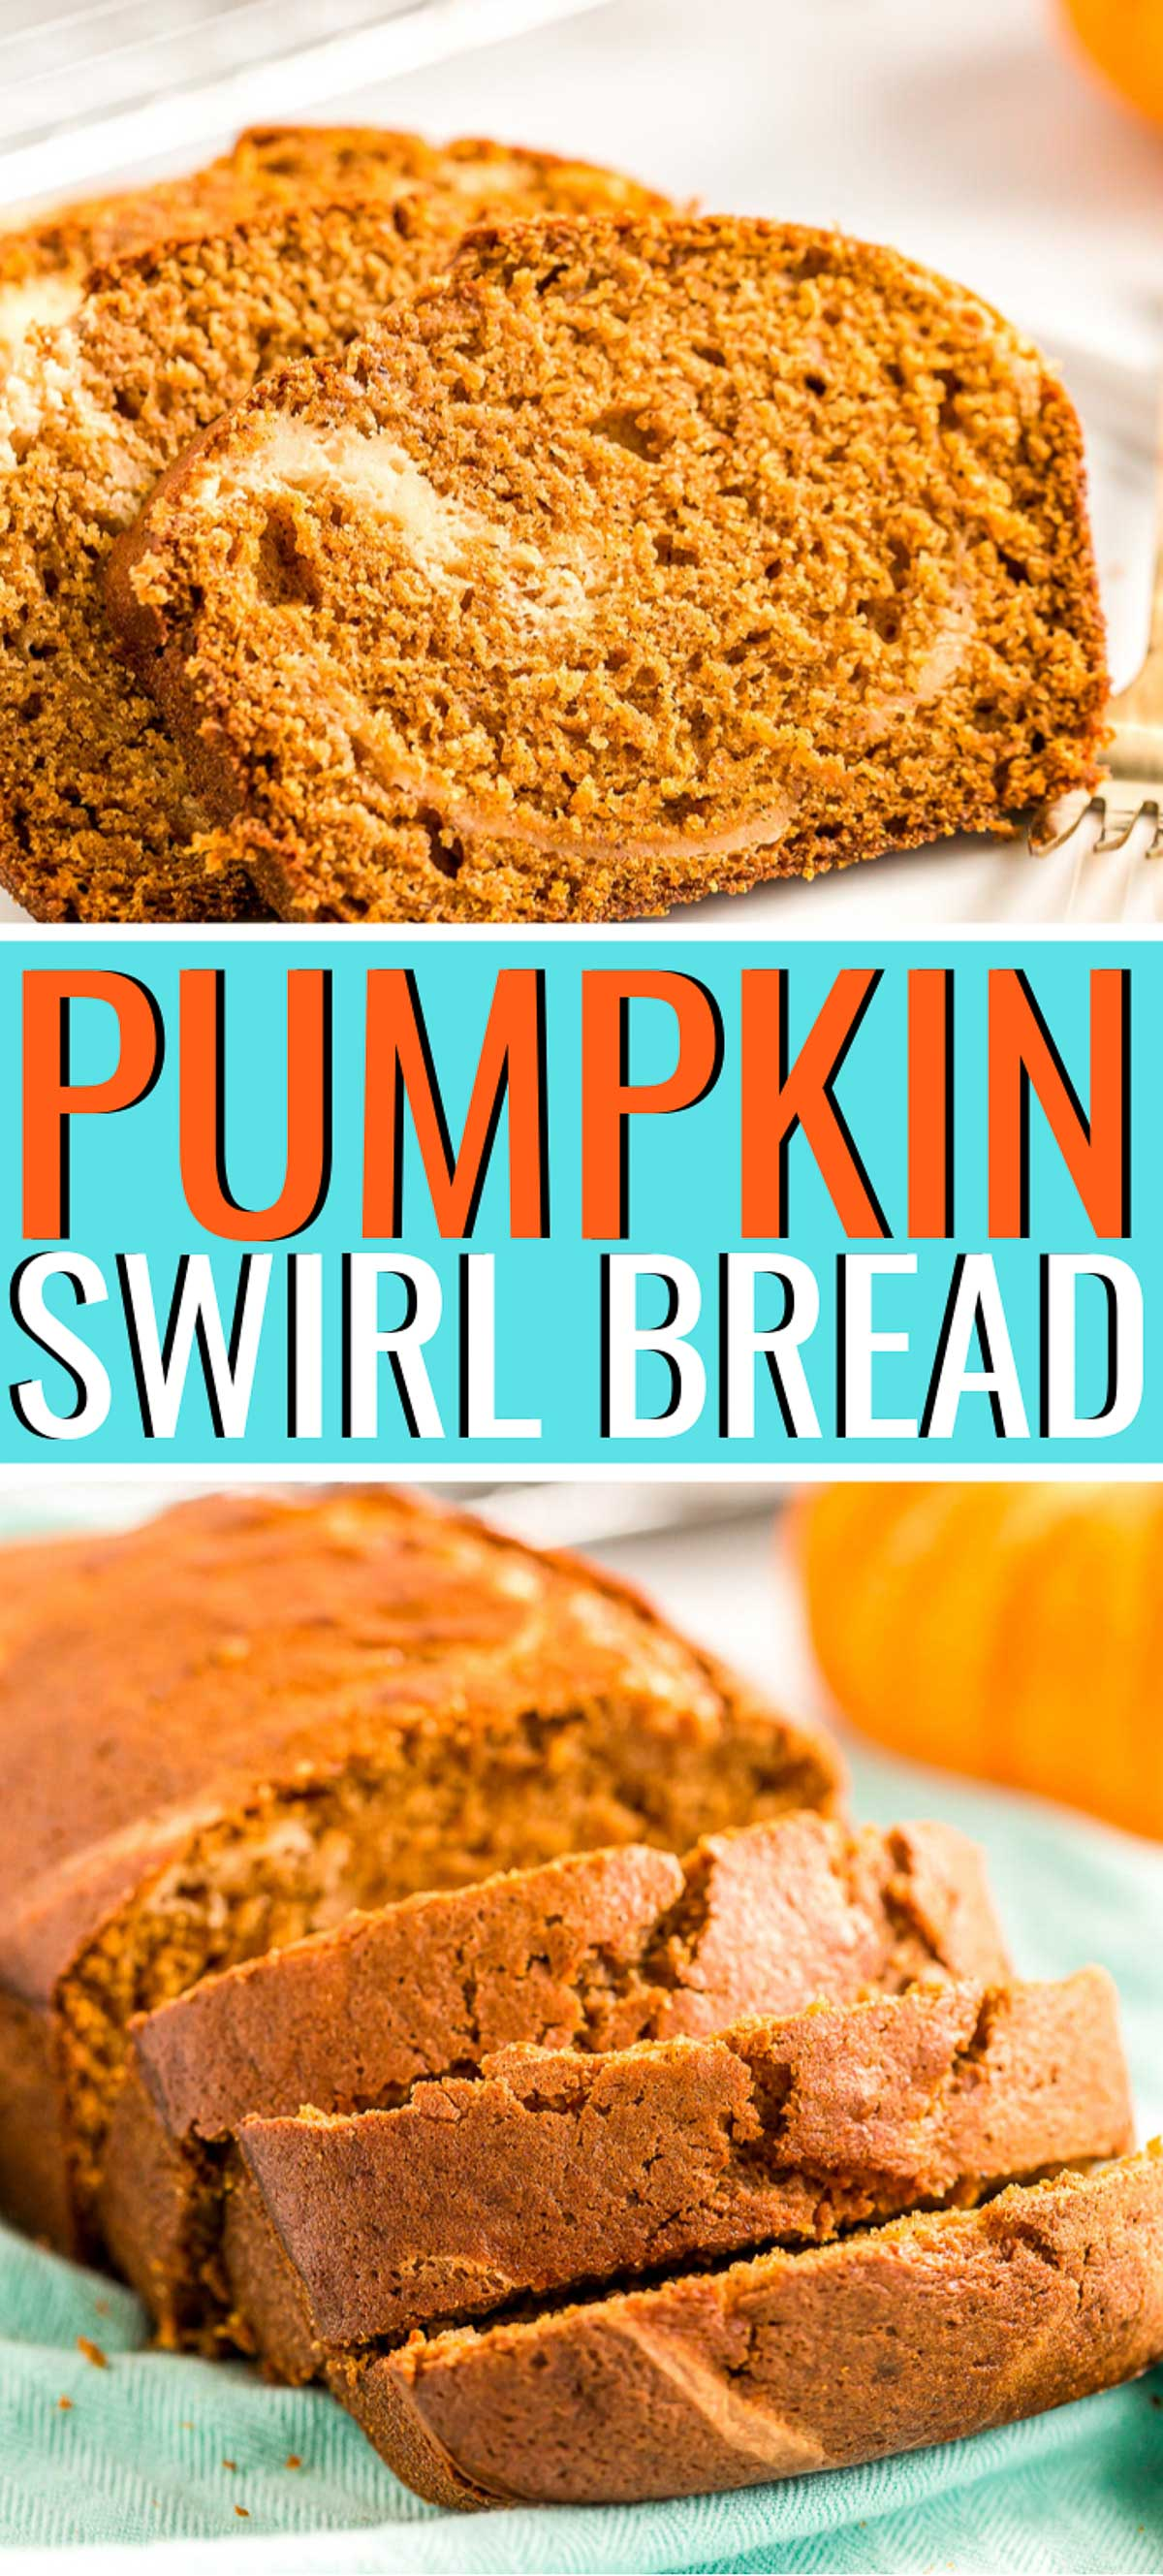 Pumpkin Cream Cheese Bread is a delicious fall quick bread recipe loaded with pumpkin flavor and swirled with caramel cream cheese filling. via @sugarandsoulco